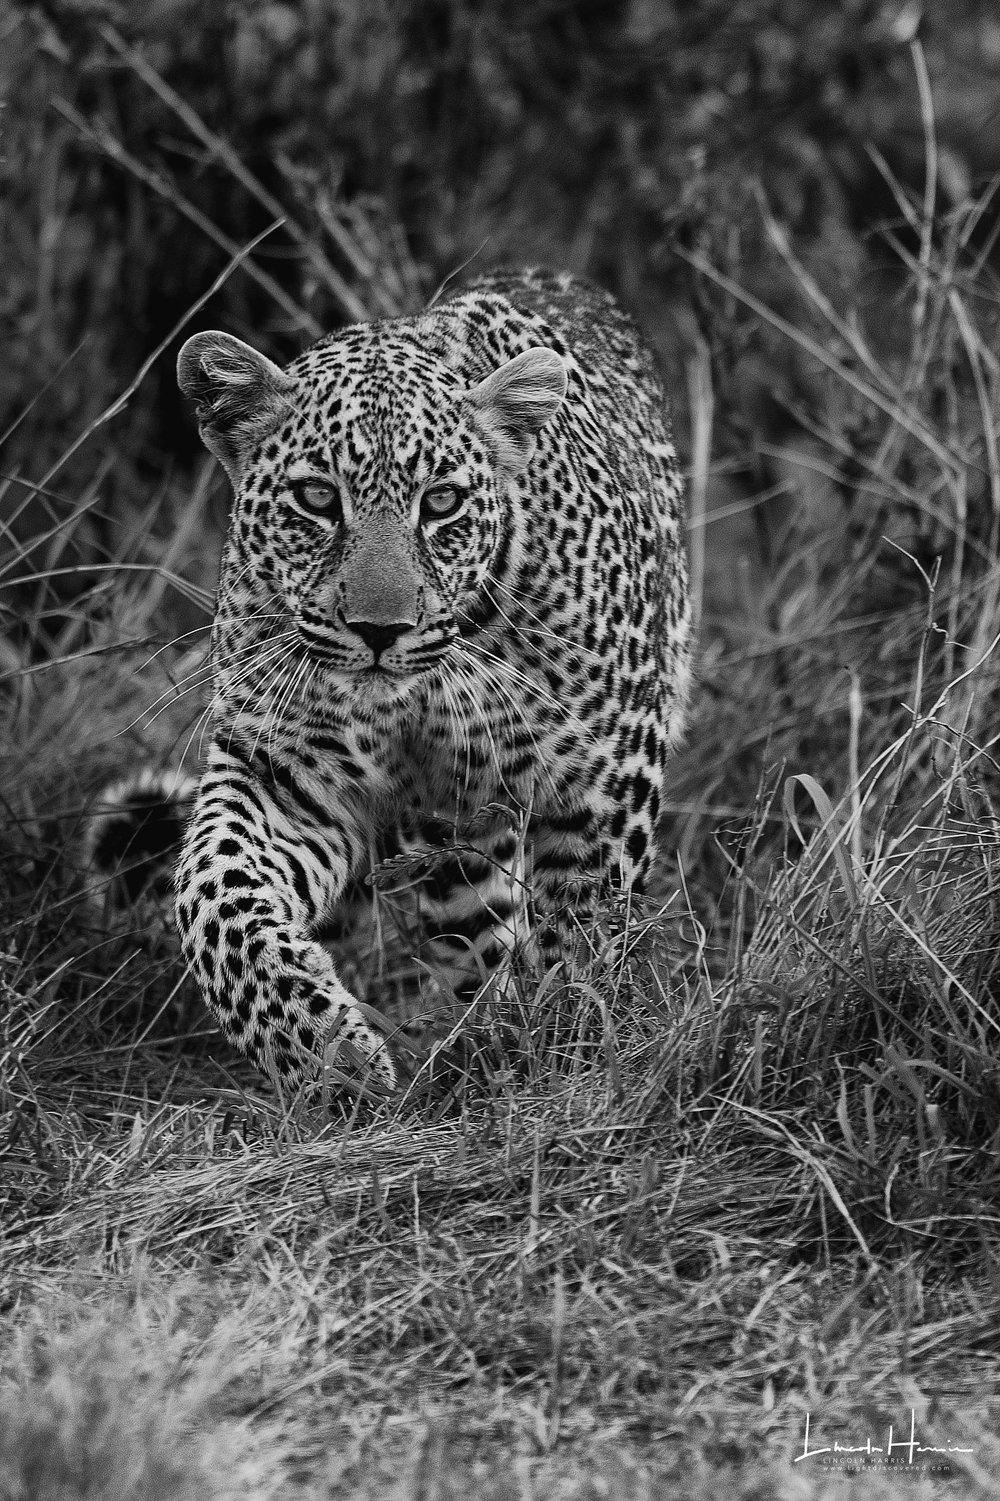 Leopard stalking head to the right 2x3.jpg